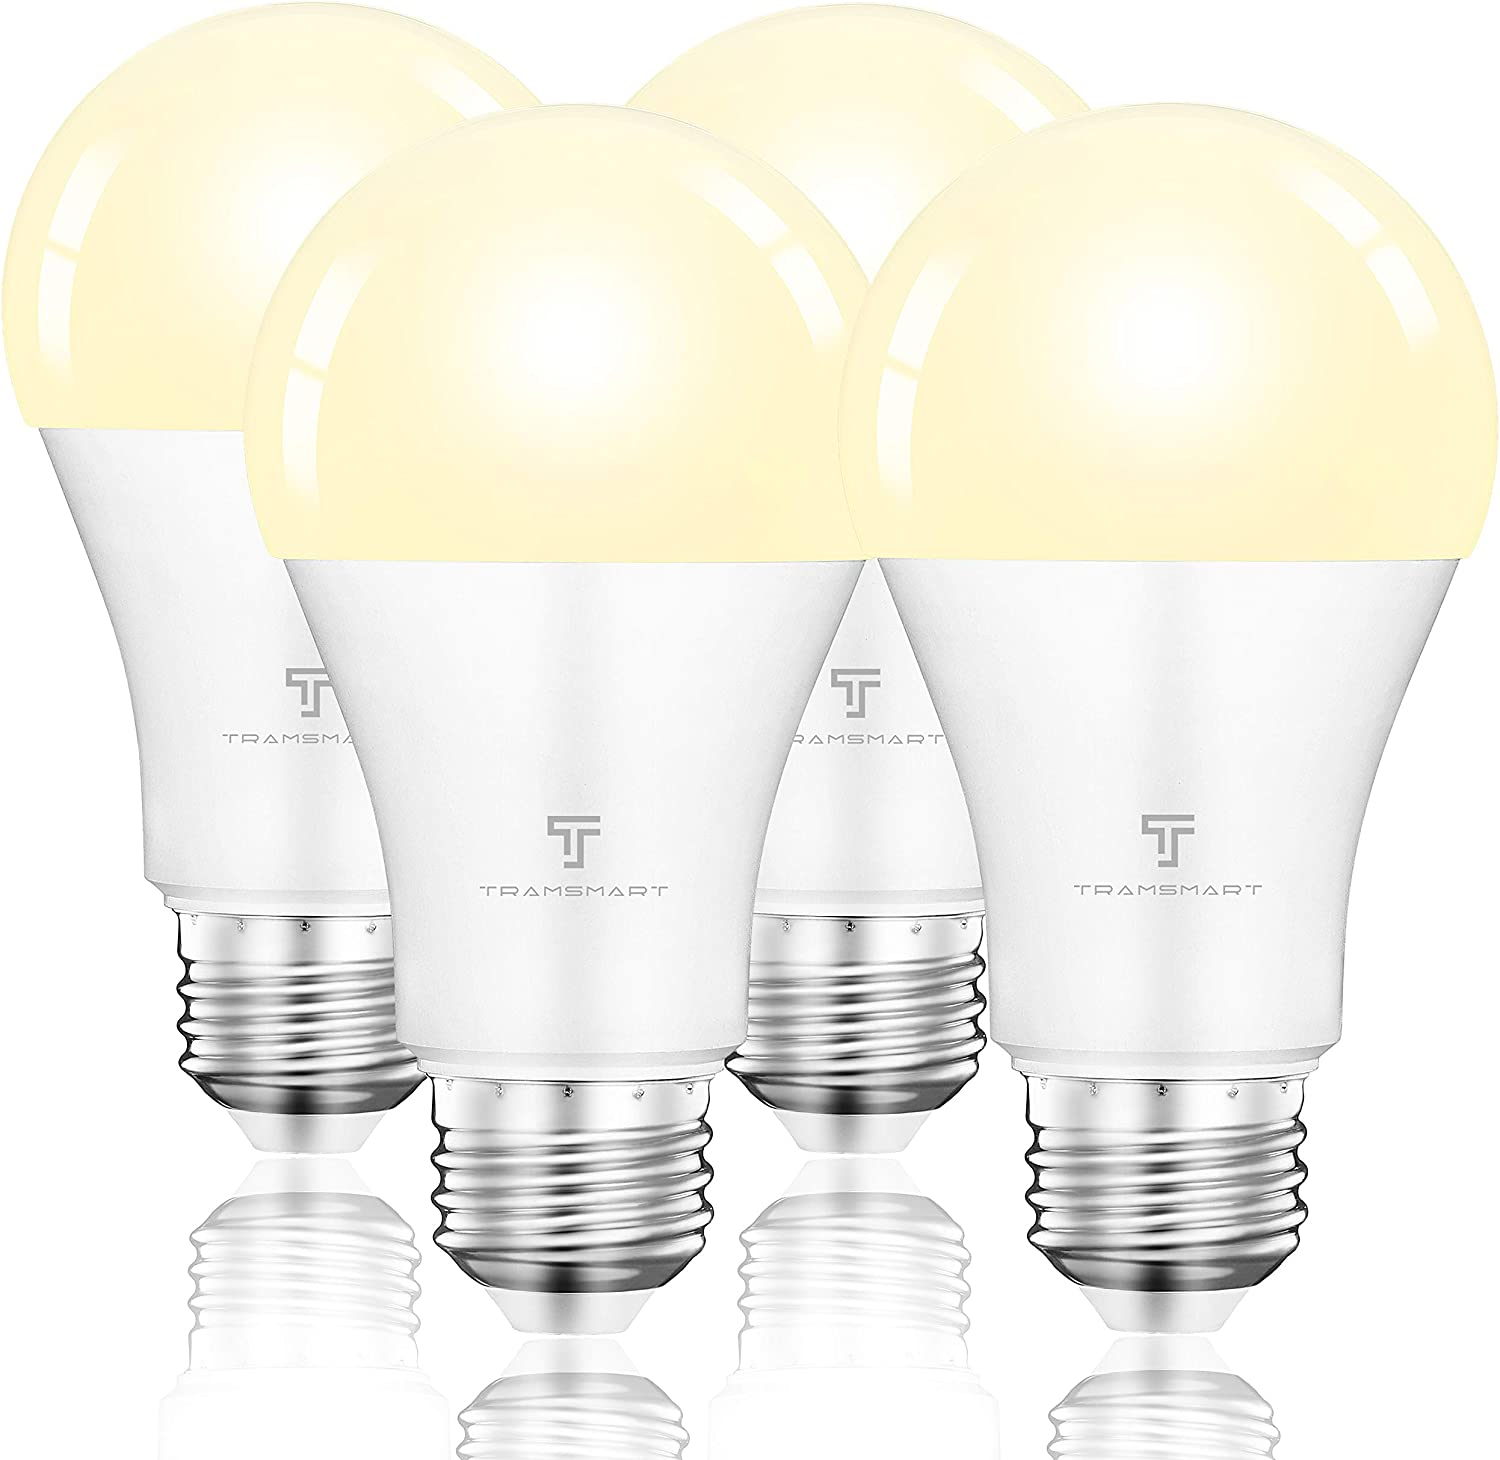 White Alexa Smart Bulbs,WiFi Dimmable Tunable Warm White 800 Lumen 9W(100W Equivalent) E26 Google Home LED Smart Lights,No Hub Required,Phone APP and Voice Remote Control,4 Pack